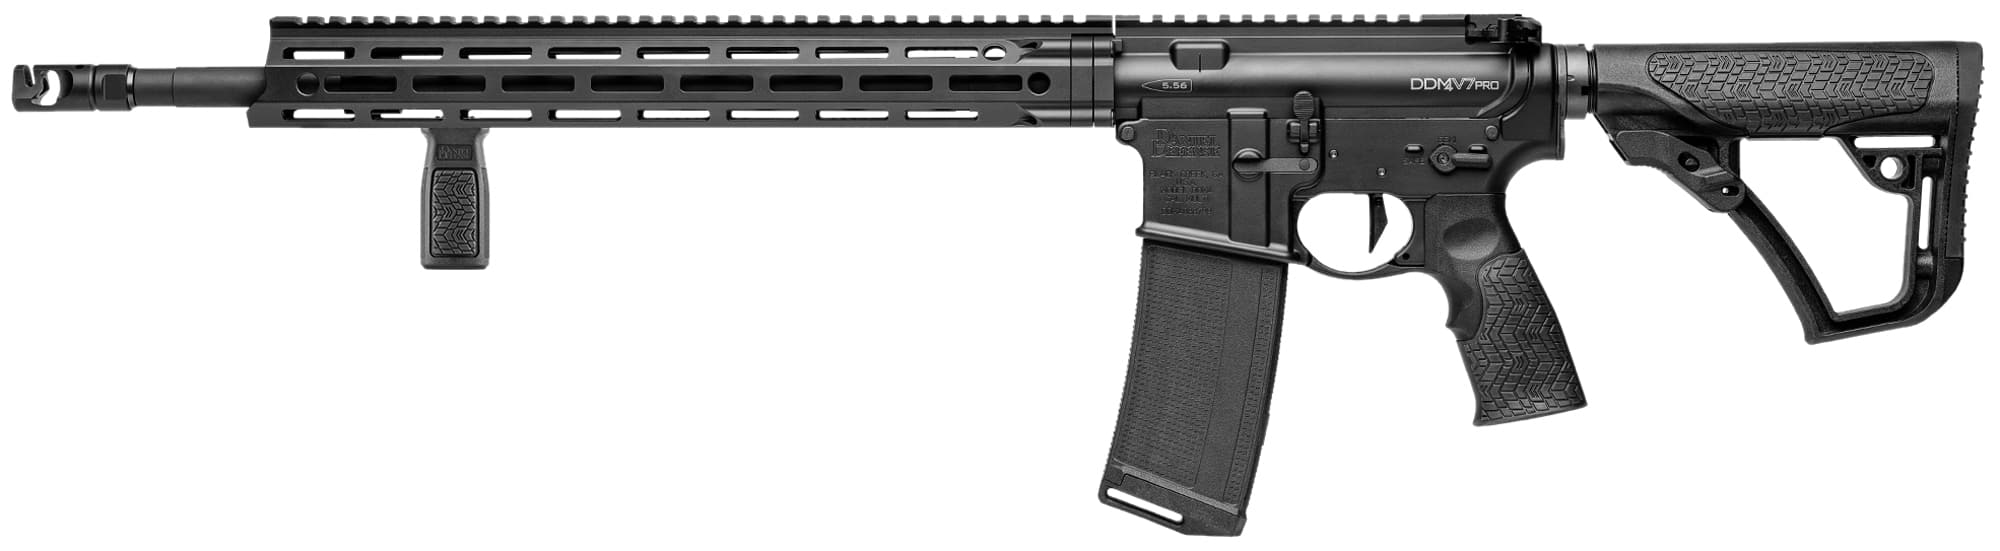 DDV7181-1-Daniel Defense DDM4V7-Pro Black 18 Barrel. Semi-Auto. Cal. 5.56 - DDV7181